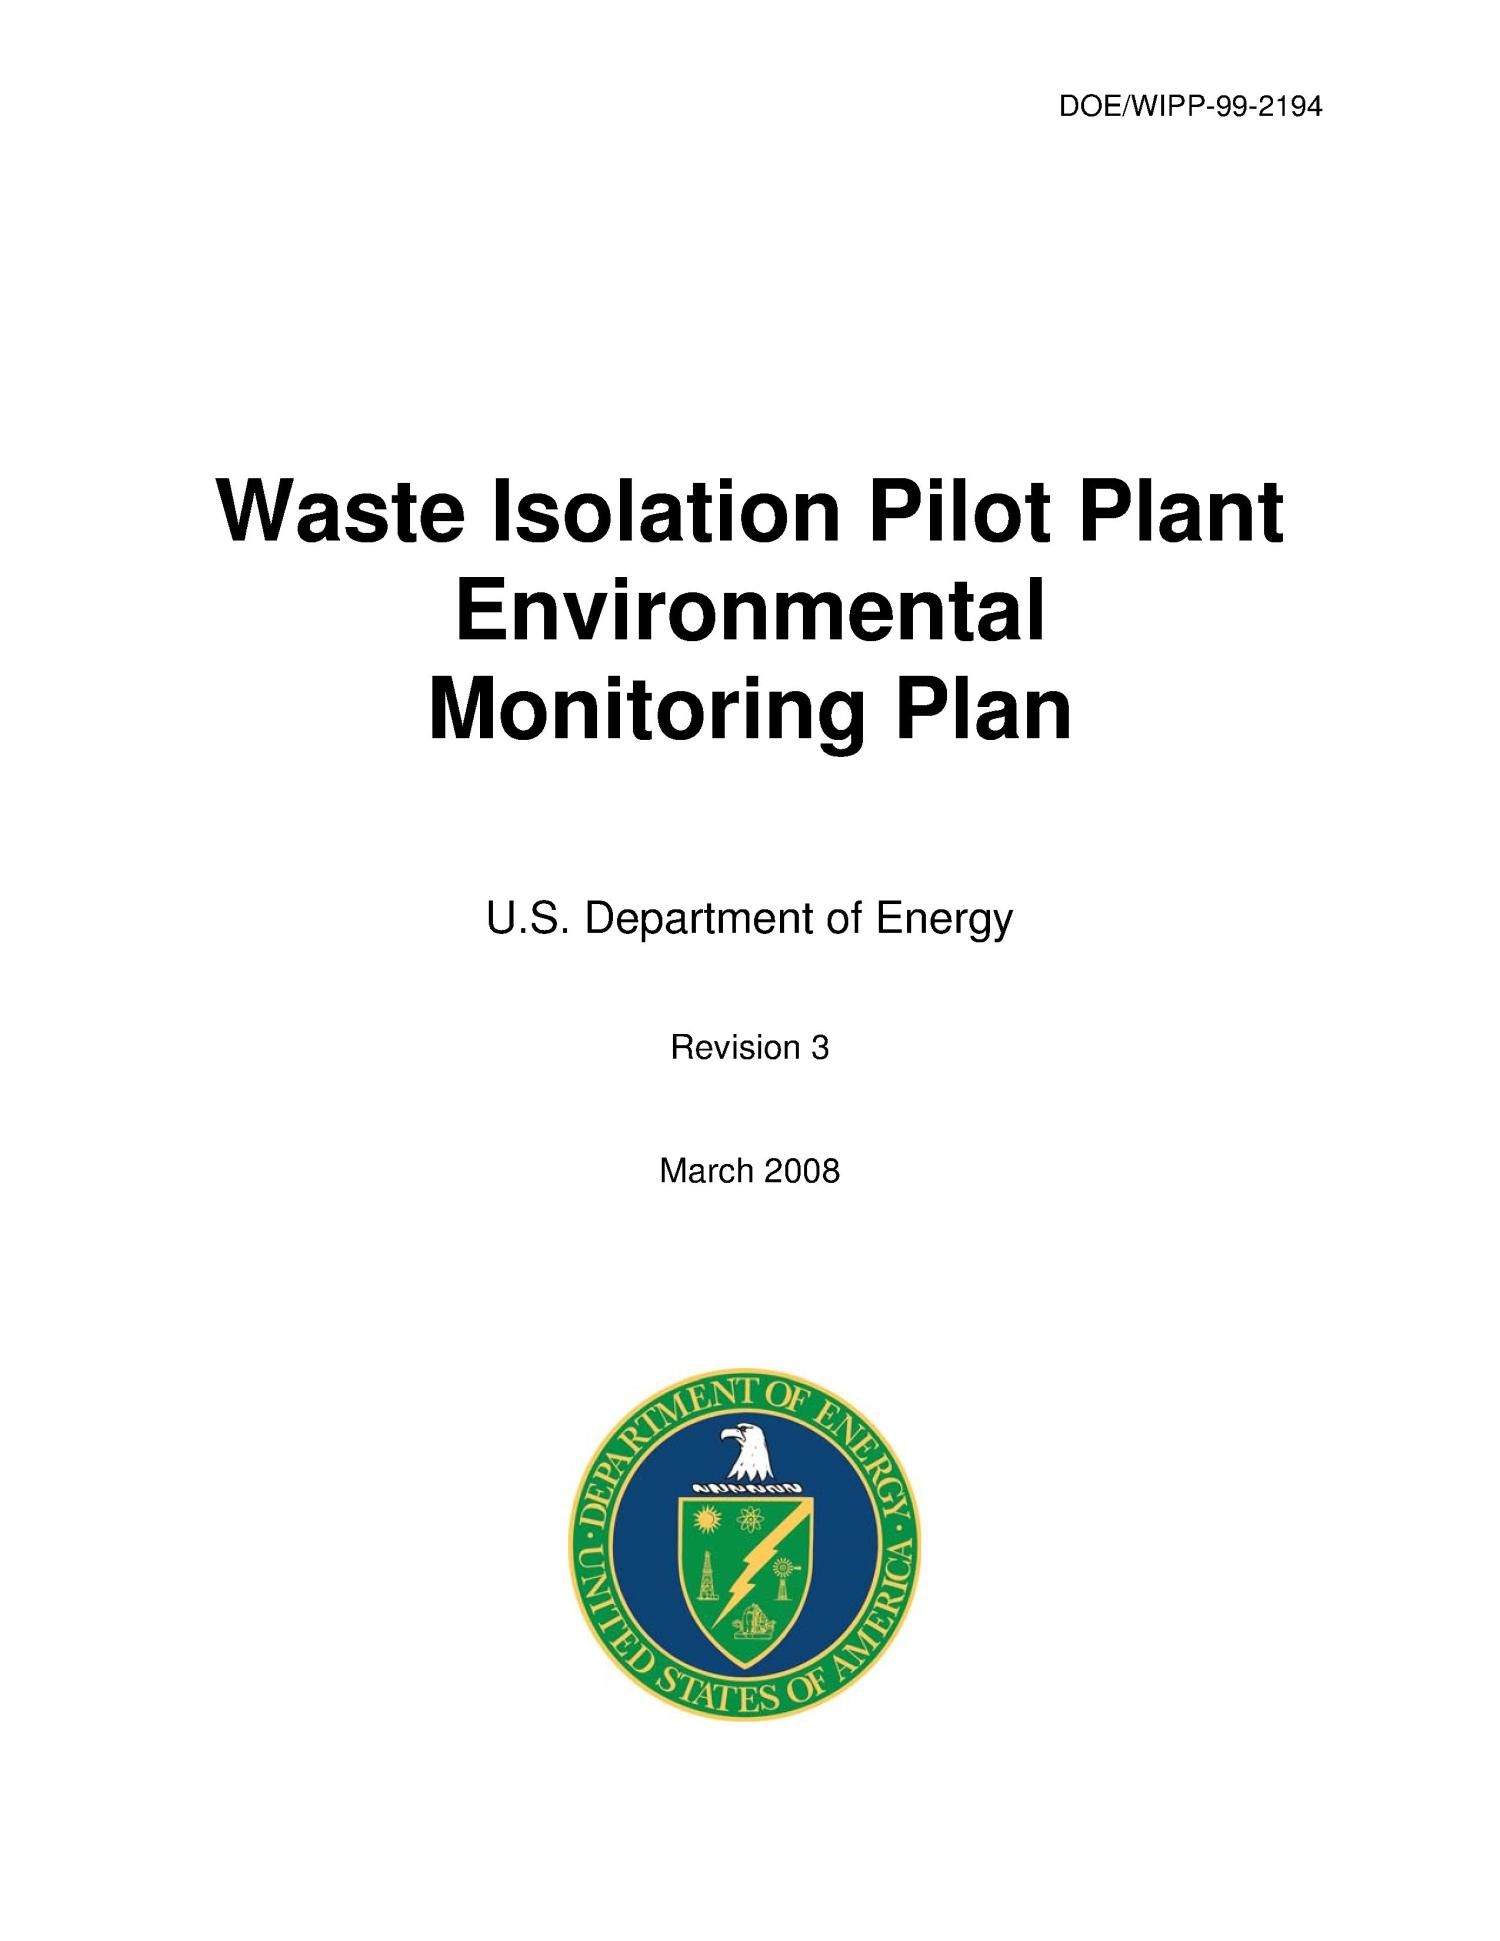 Waste Isolation Pilot Plant Environmental Monitoring Plan                                                                                                      [Sequence #]: 1 of 48